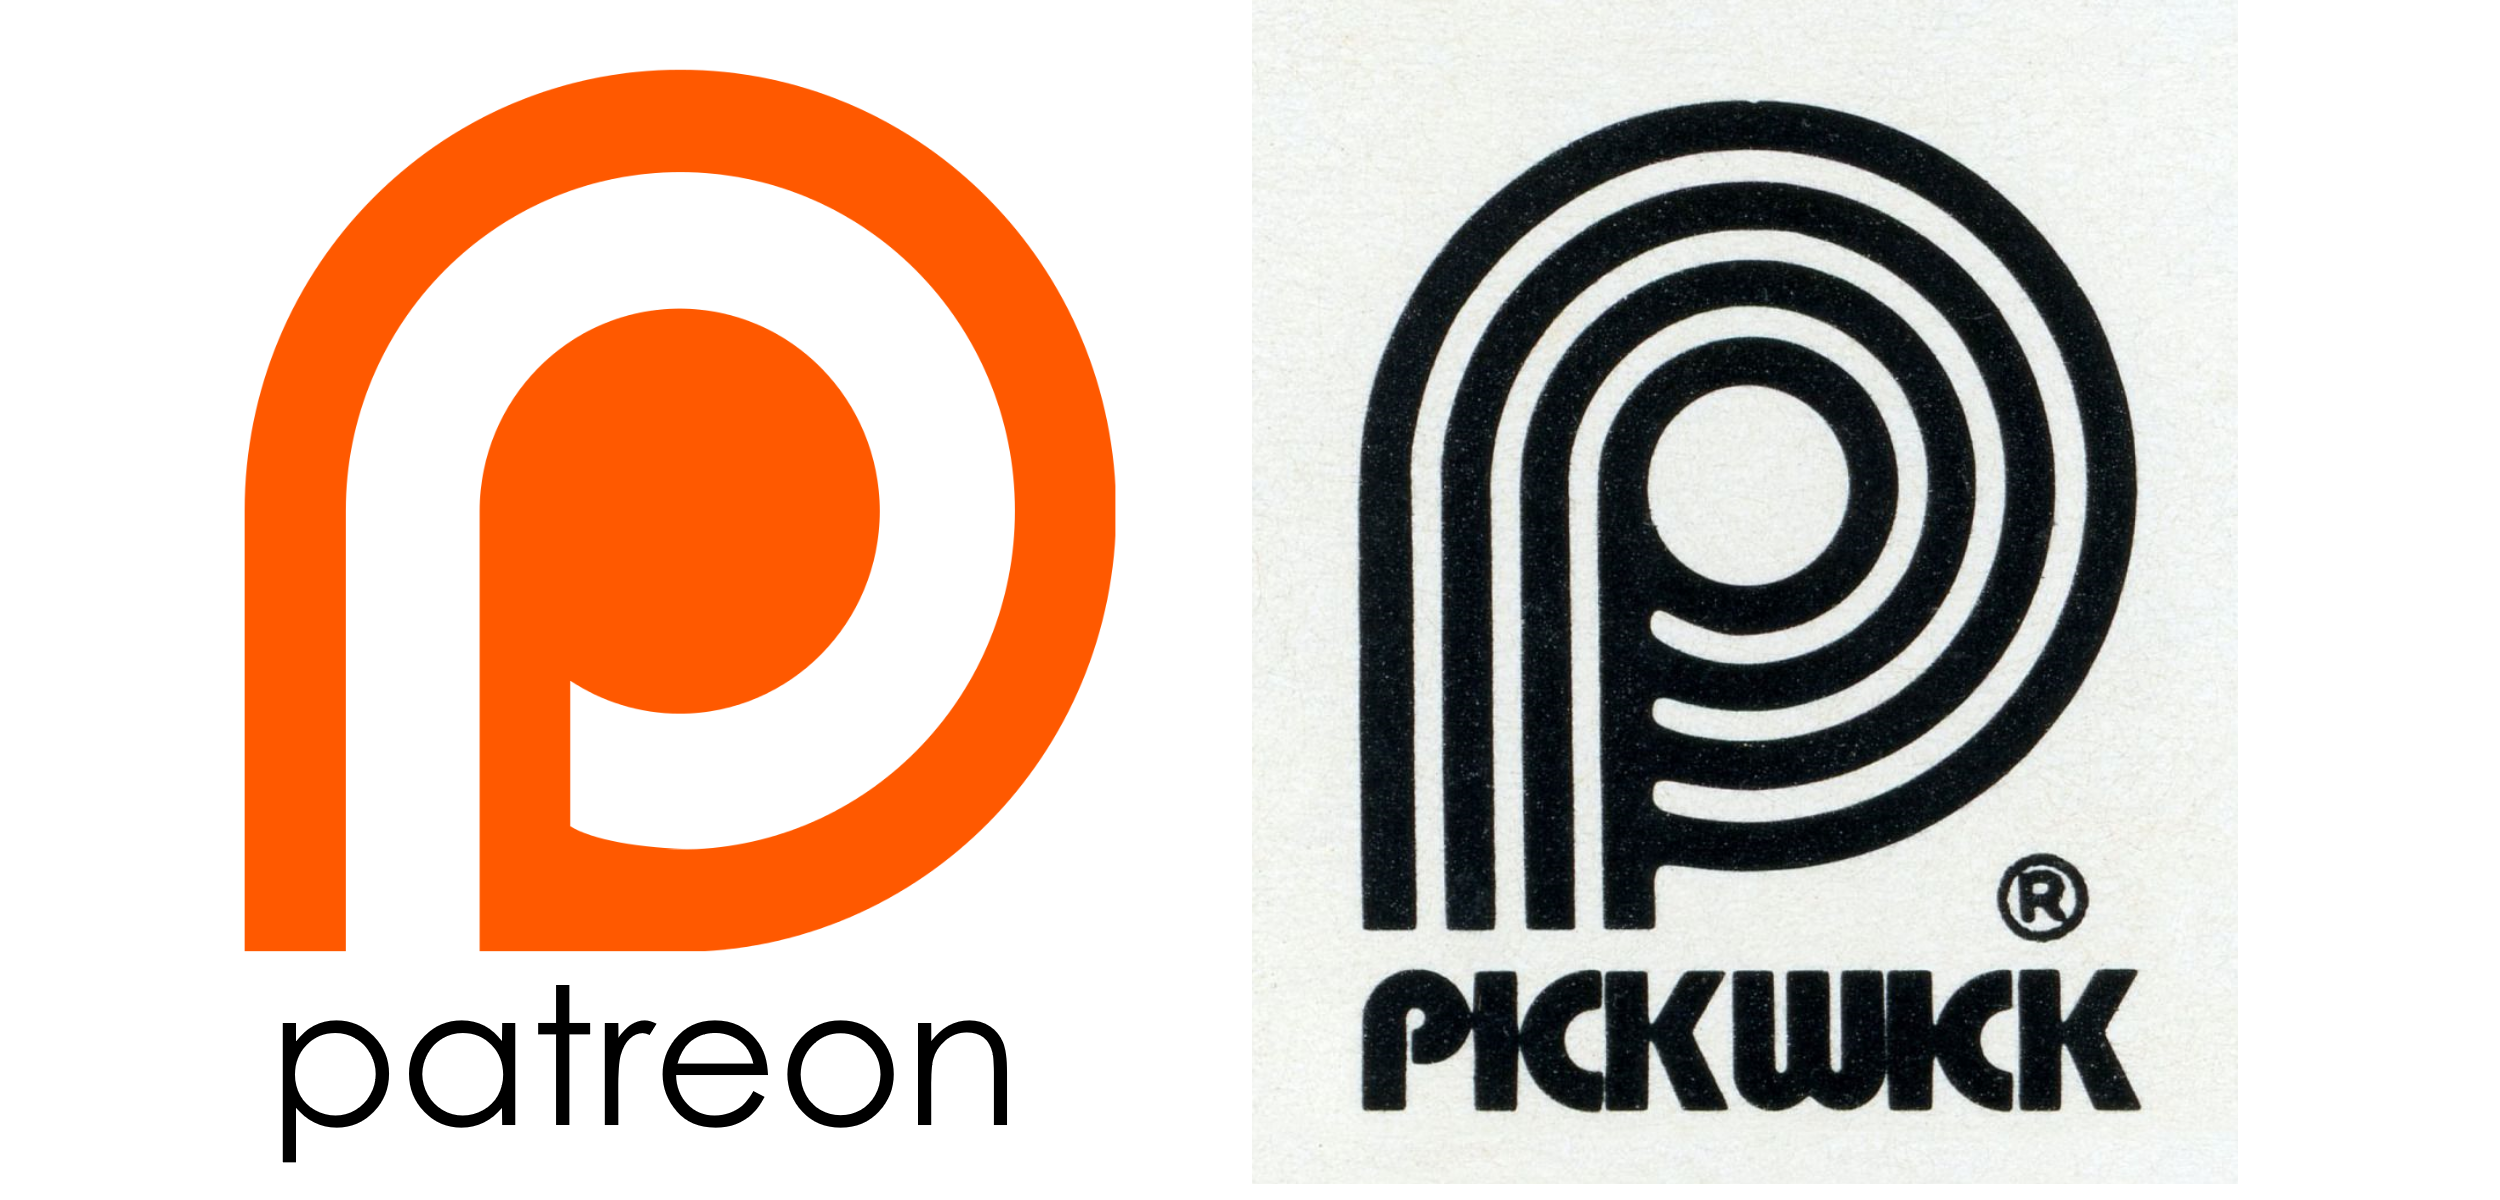 Why did Patreon changed its logo from something that looked nice ...